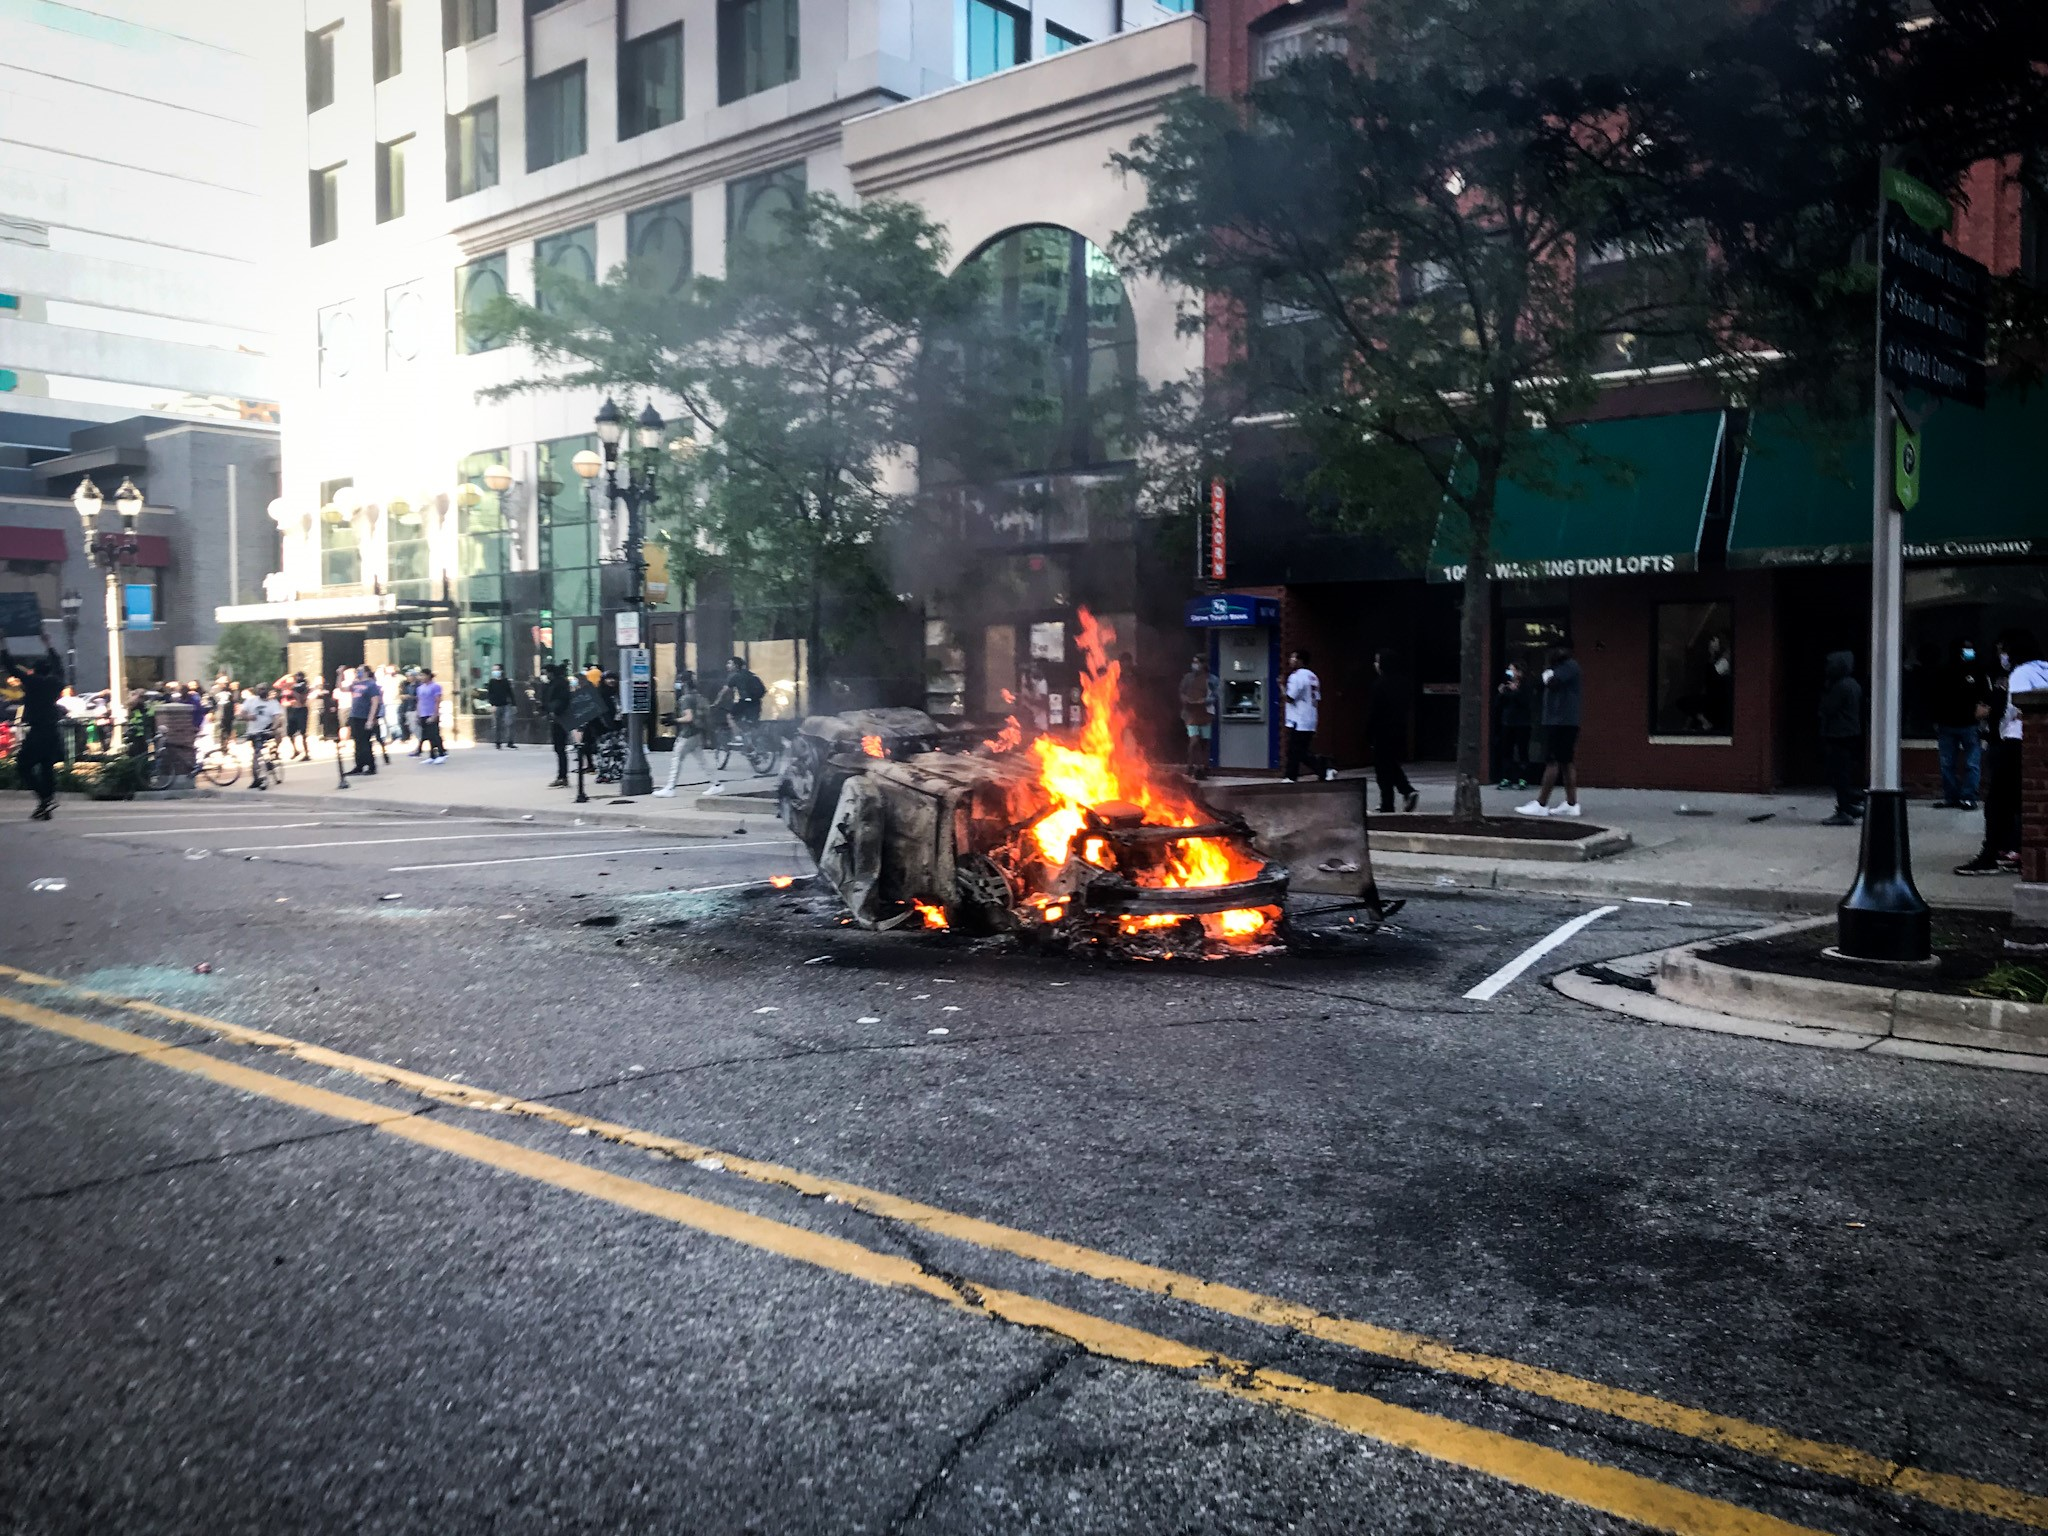 A car was completely burned on a street in Lansing after a peaceful protest turned violent on Sunday, May 31, 2020. (WWMT/Mikenzie Frost)